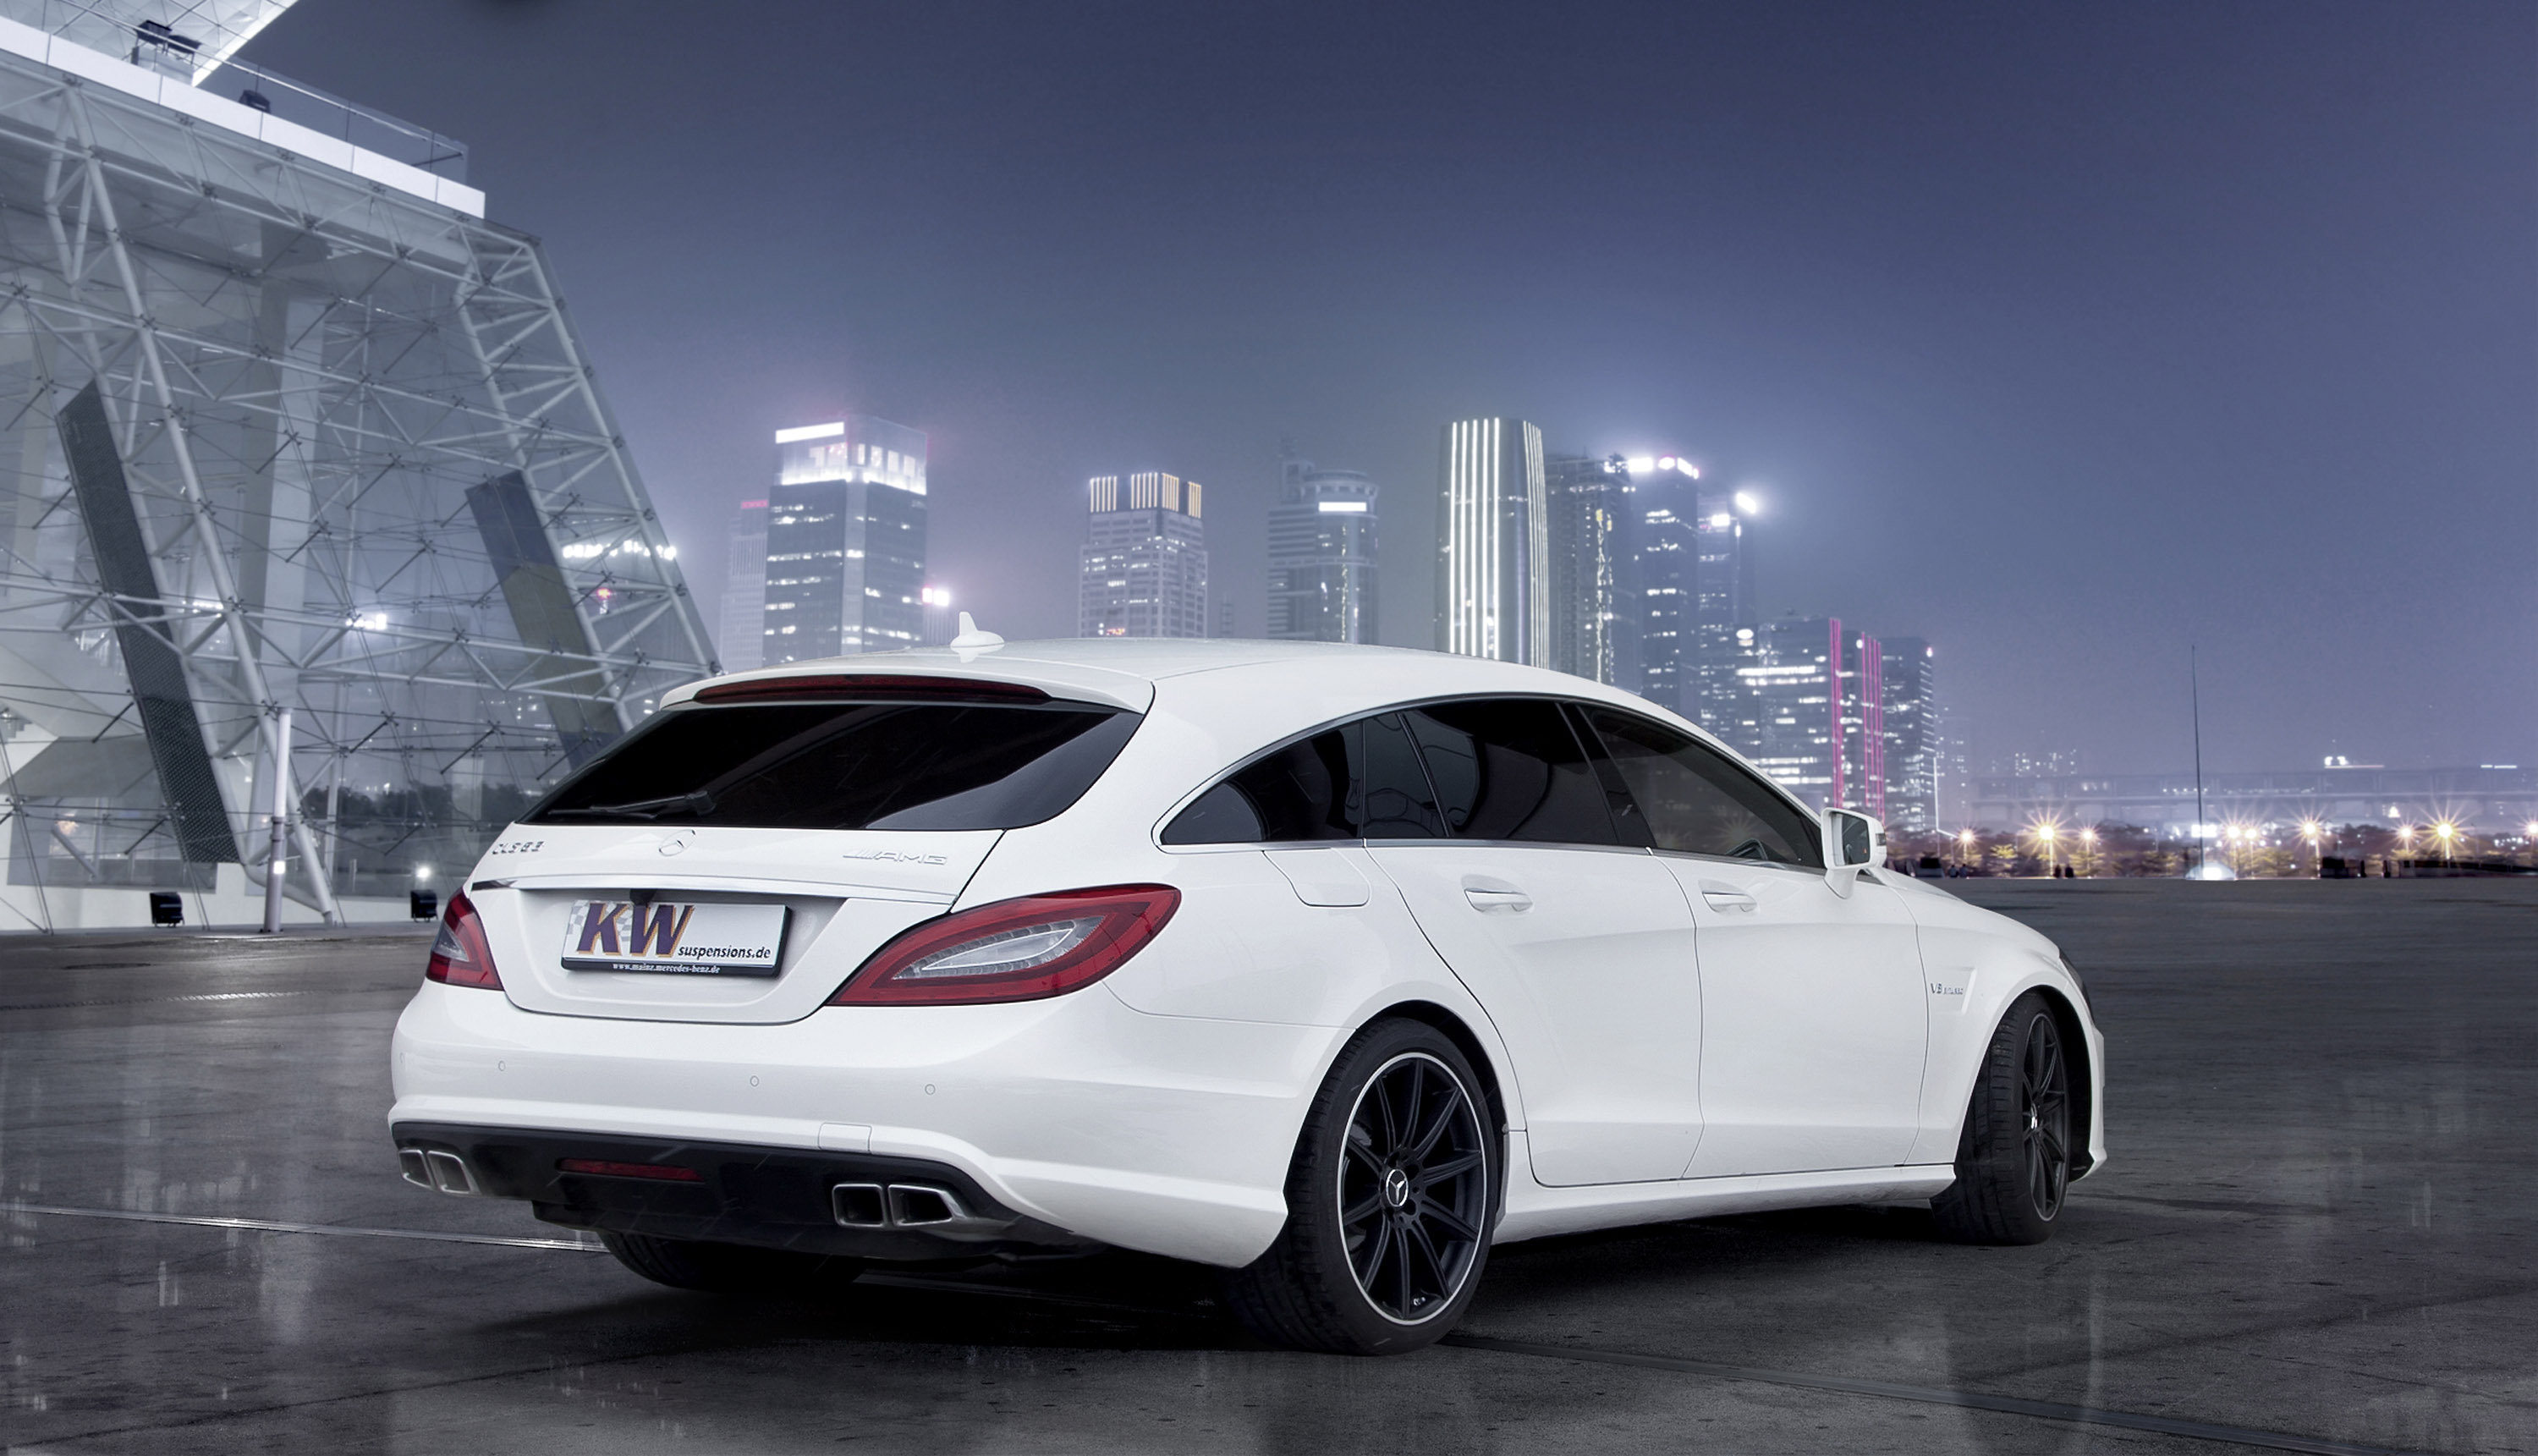 Kw Mercedes Benz Cls 63 Amg Shooting Brake Picture 87007